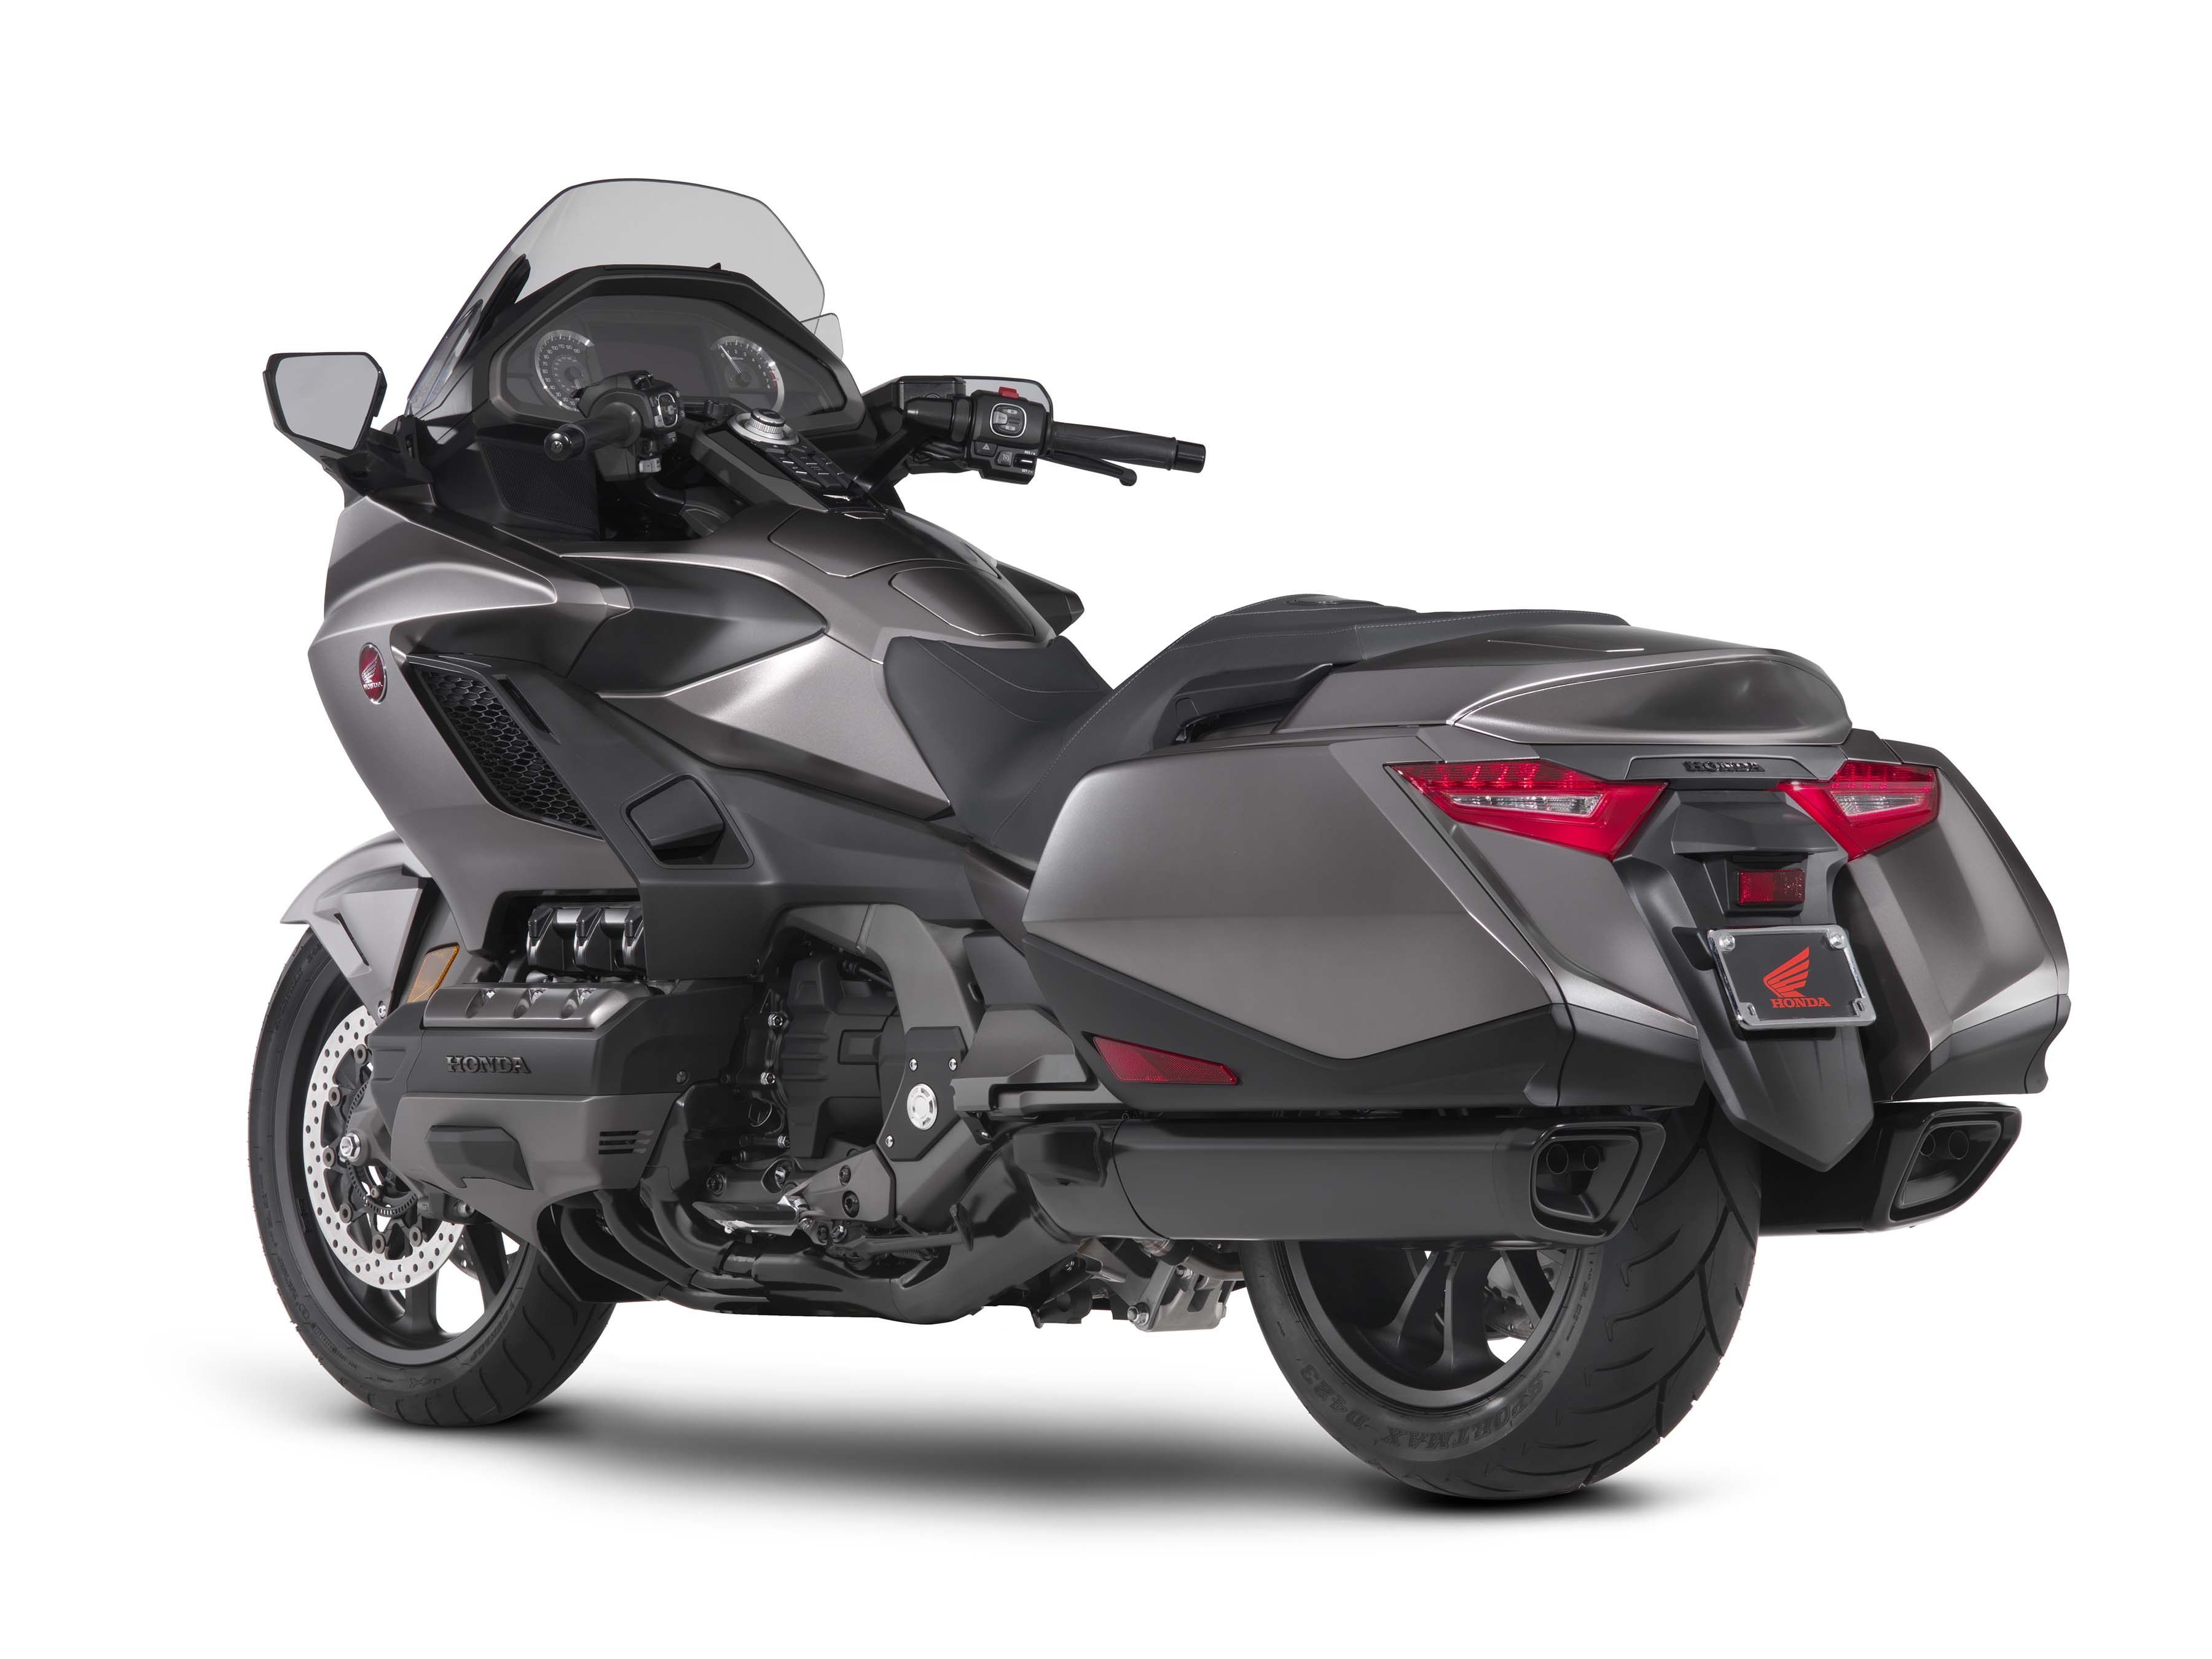 The Sixth Generation Honda Gold Wing Is Finally Here - Asphalt & Rubber